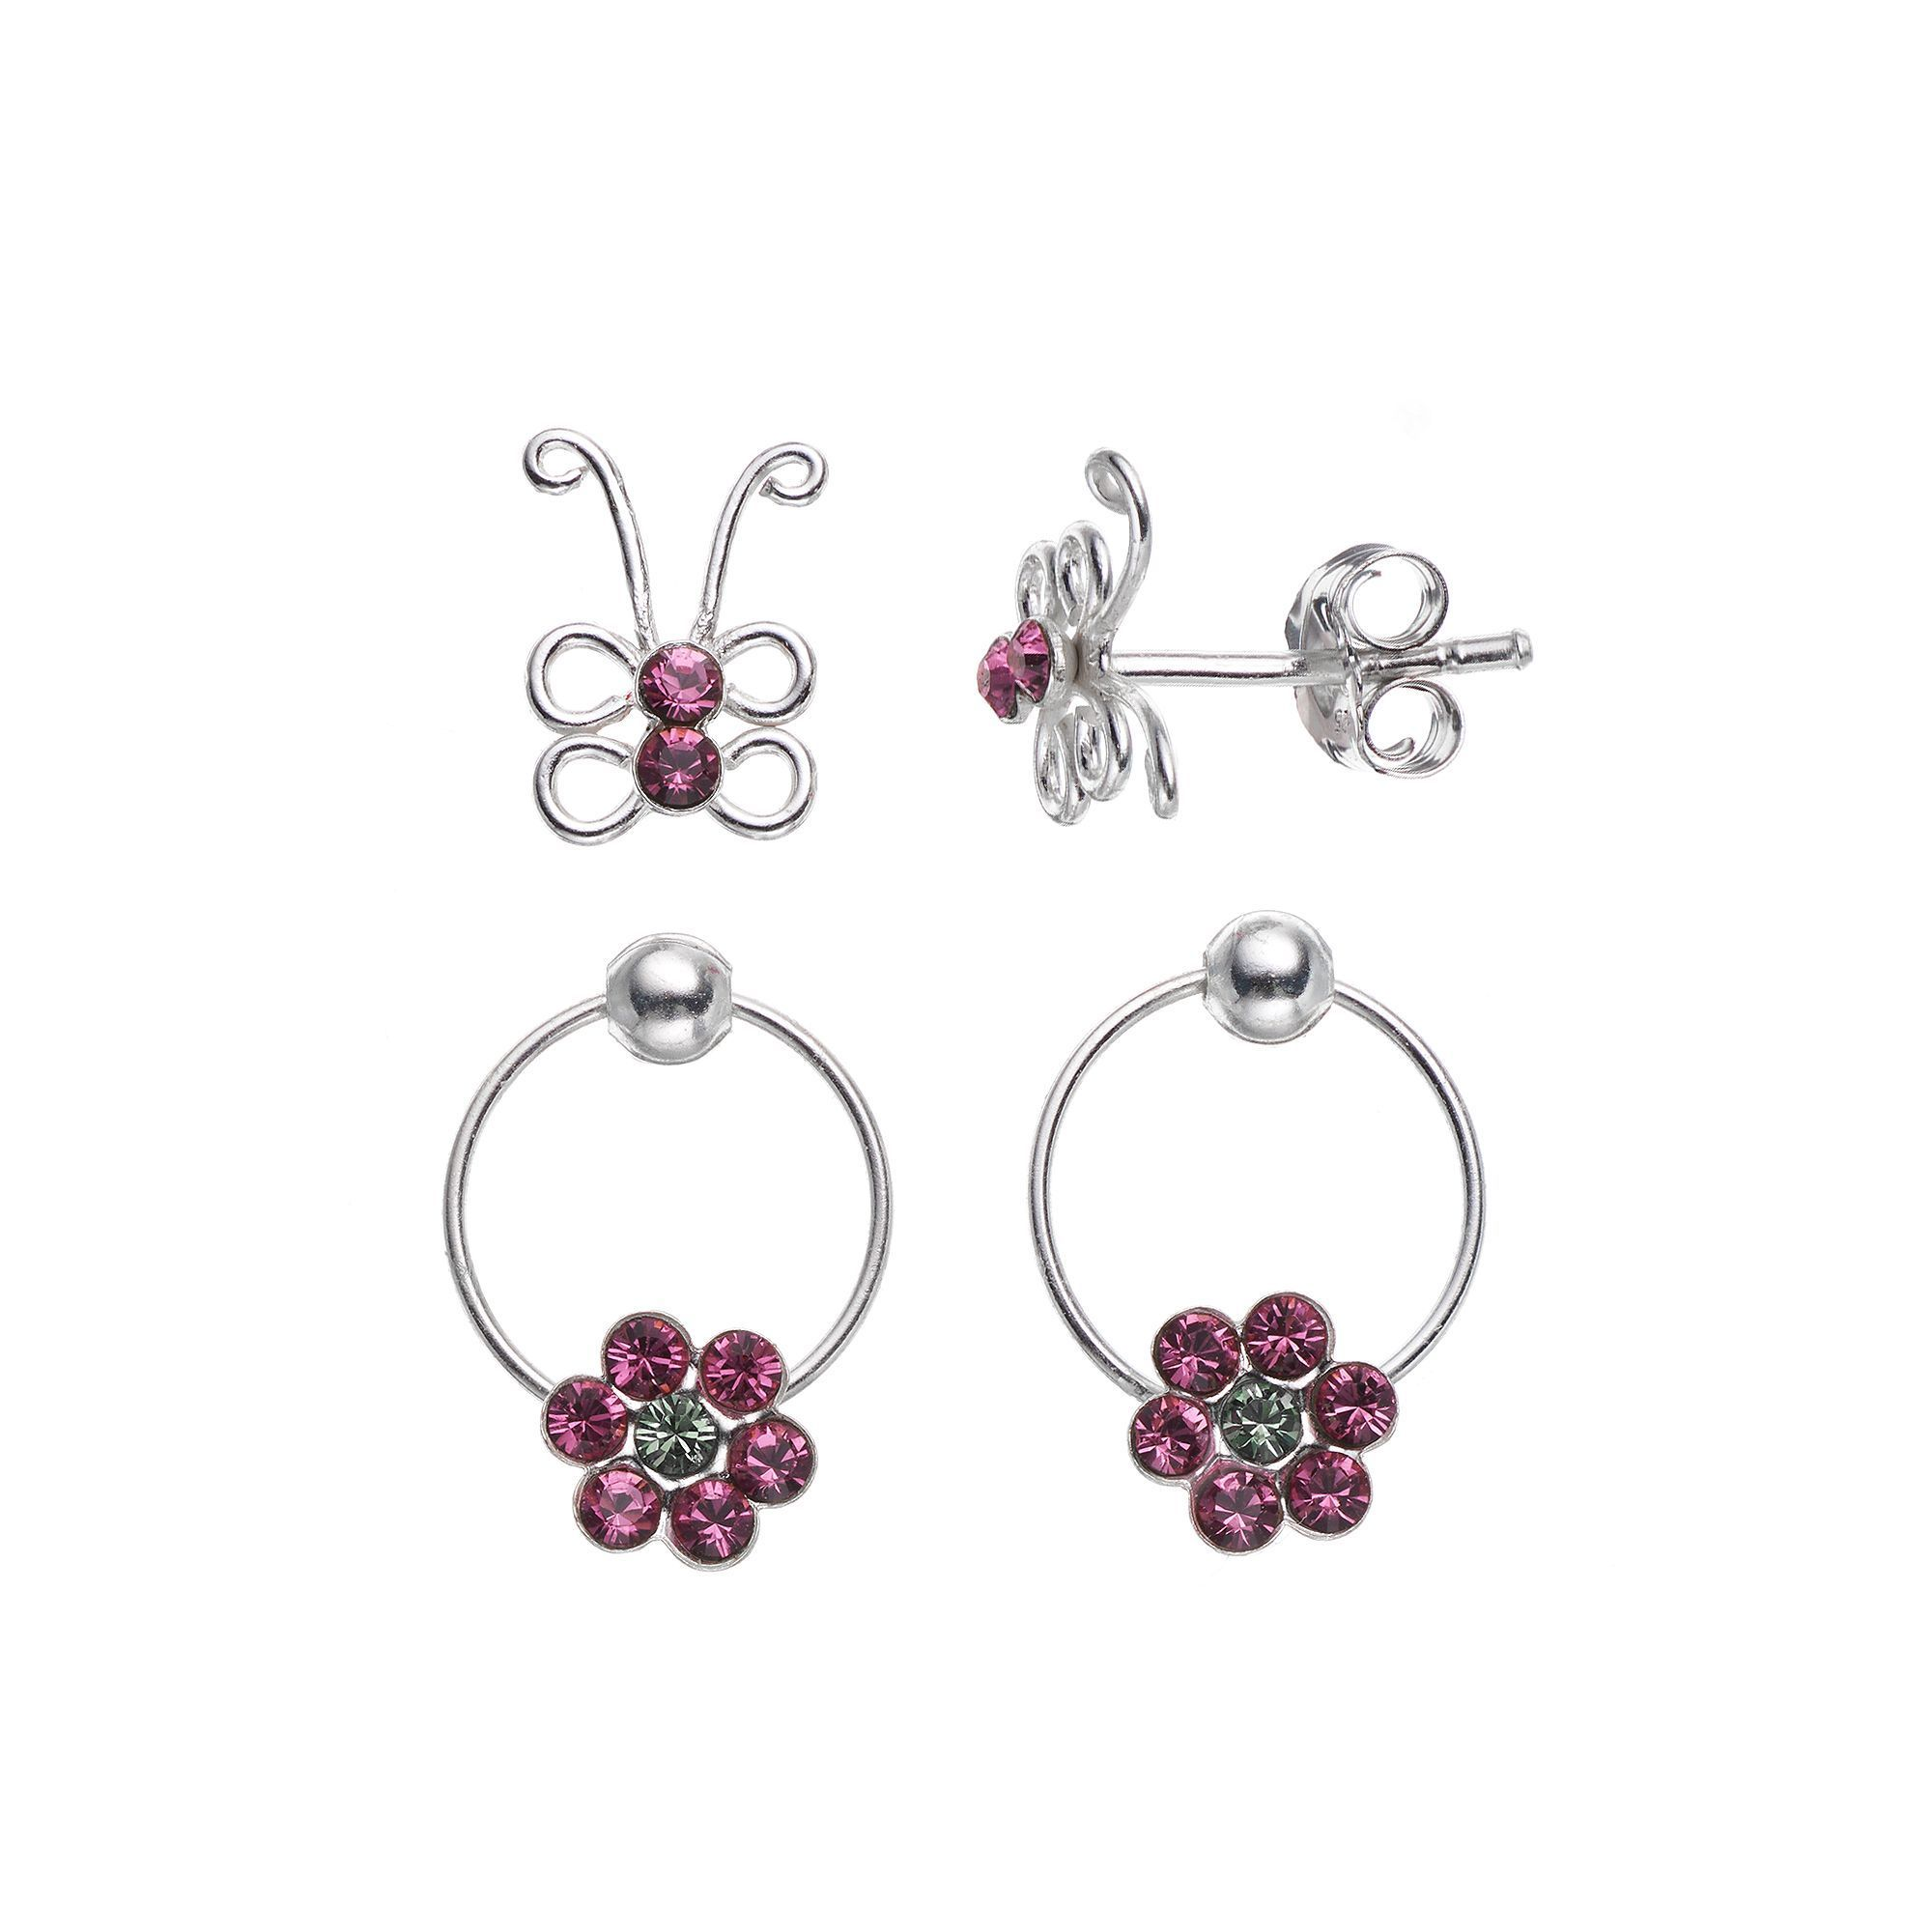 Charming Kids Sterling Silver Crystal Erfly Stud Flower Hoop Earring Set Made